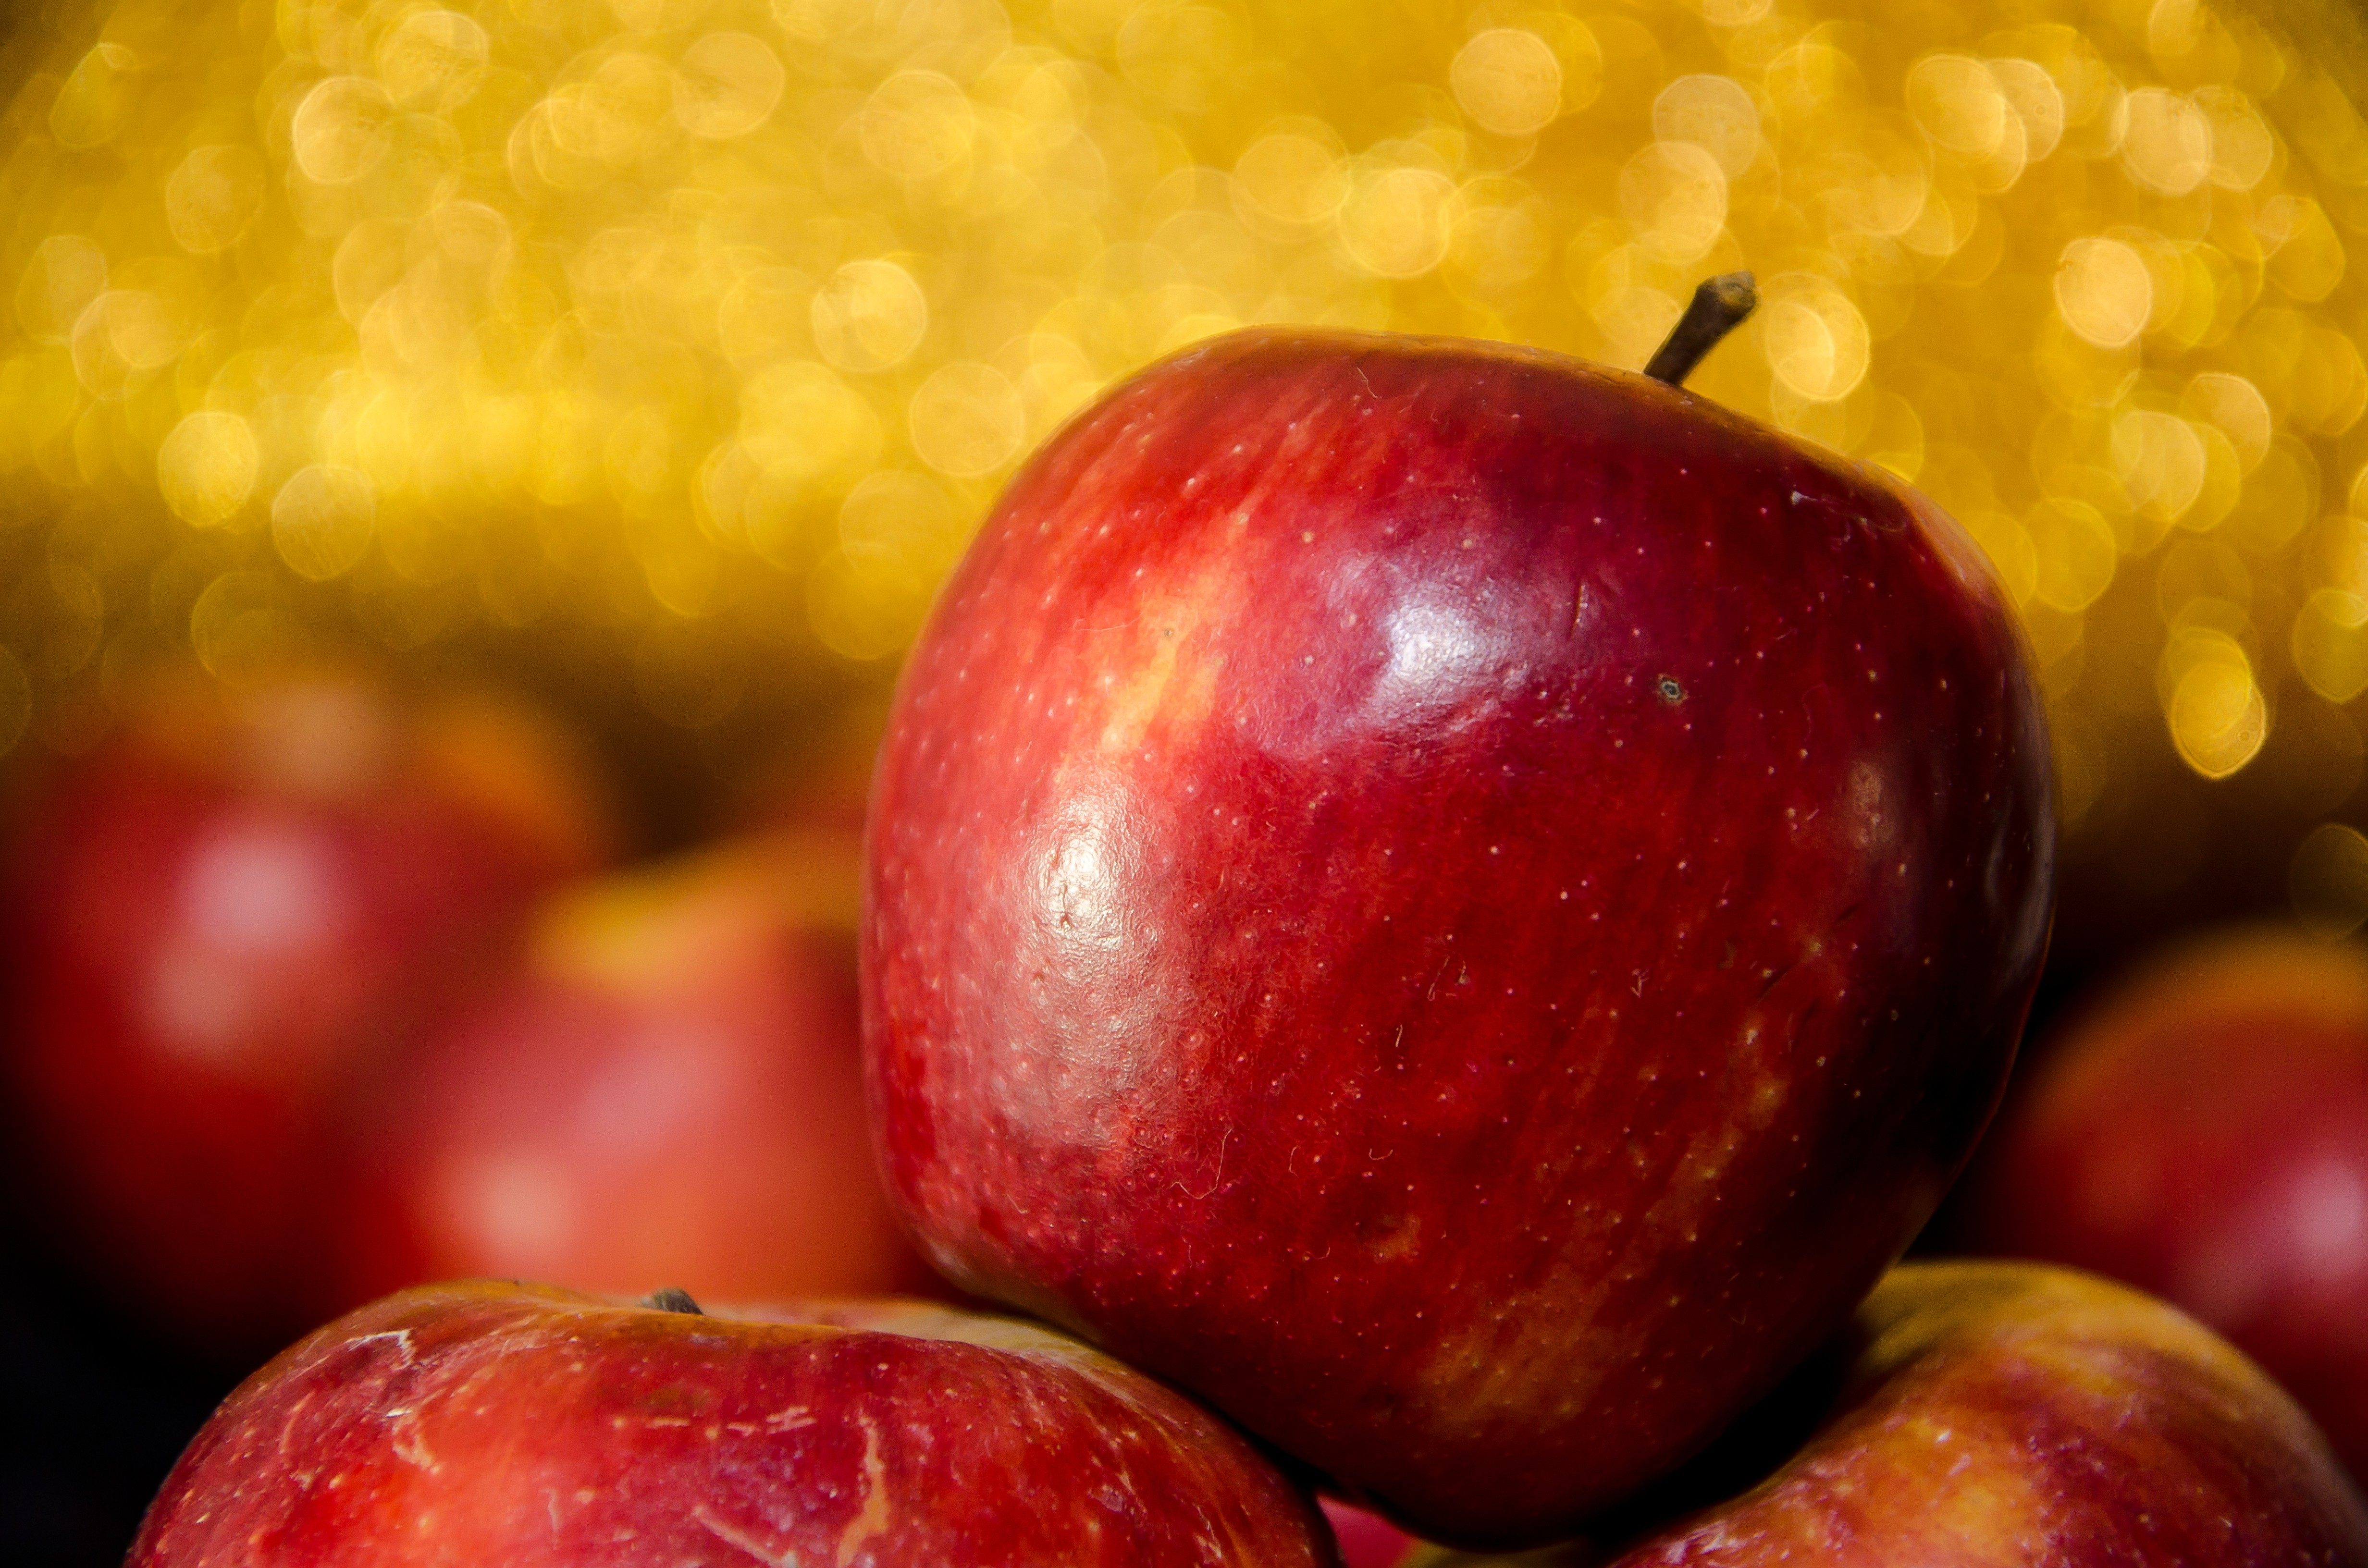 How to Grow Apples and Pears in All Seasons